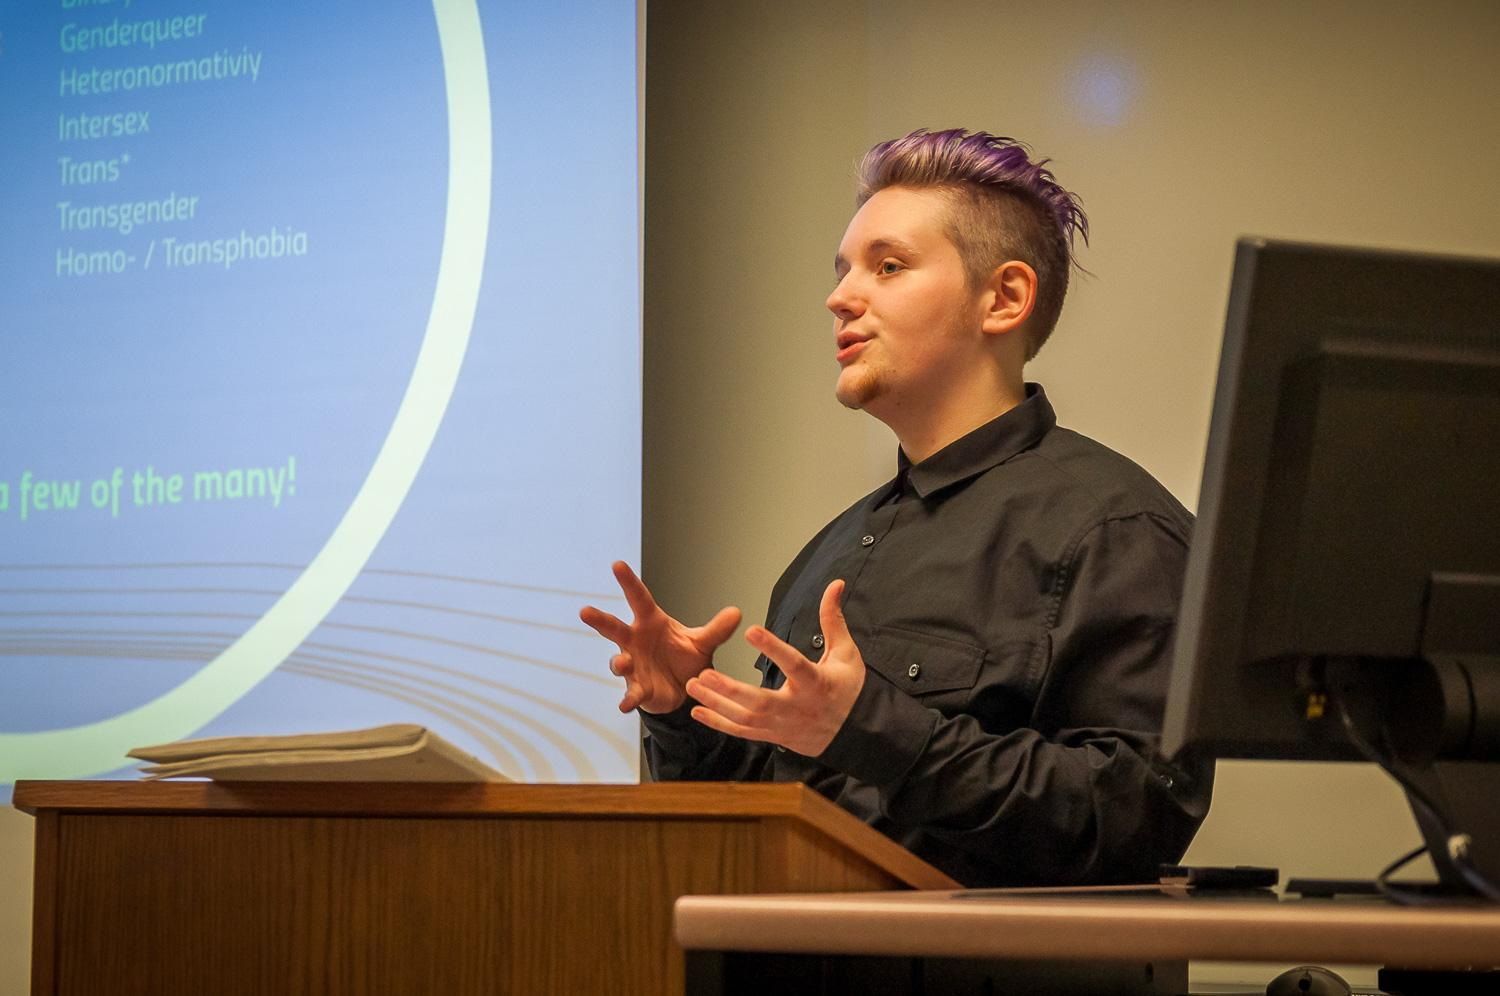 Alister Kohls, junior sociology major, spreads awareness about LGBTQ+ experiences.